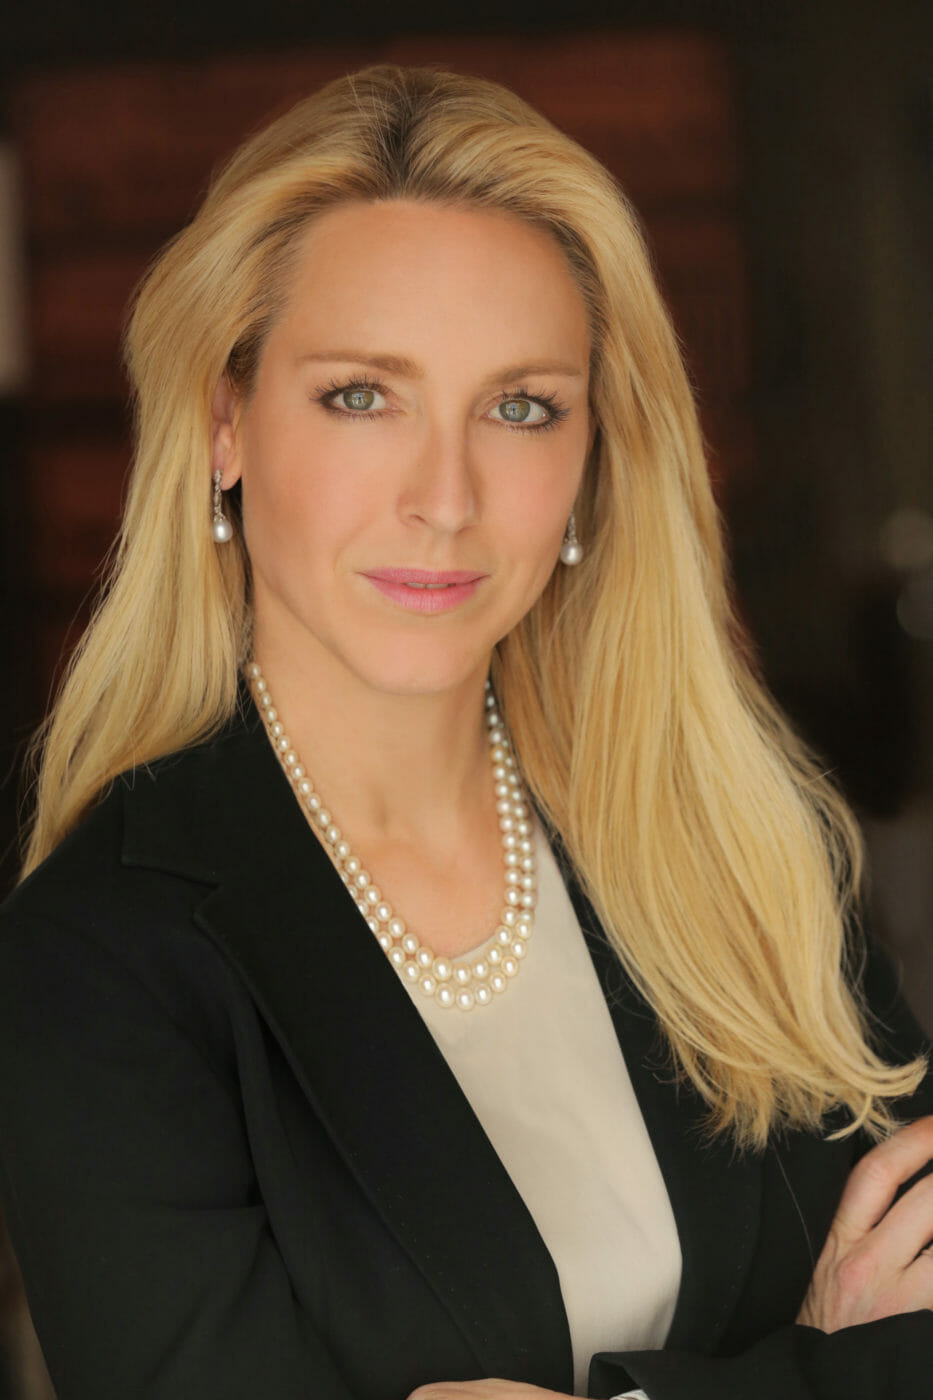 Barbara Ann Bernard, Wincrest Capital, interviewed